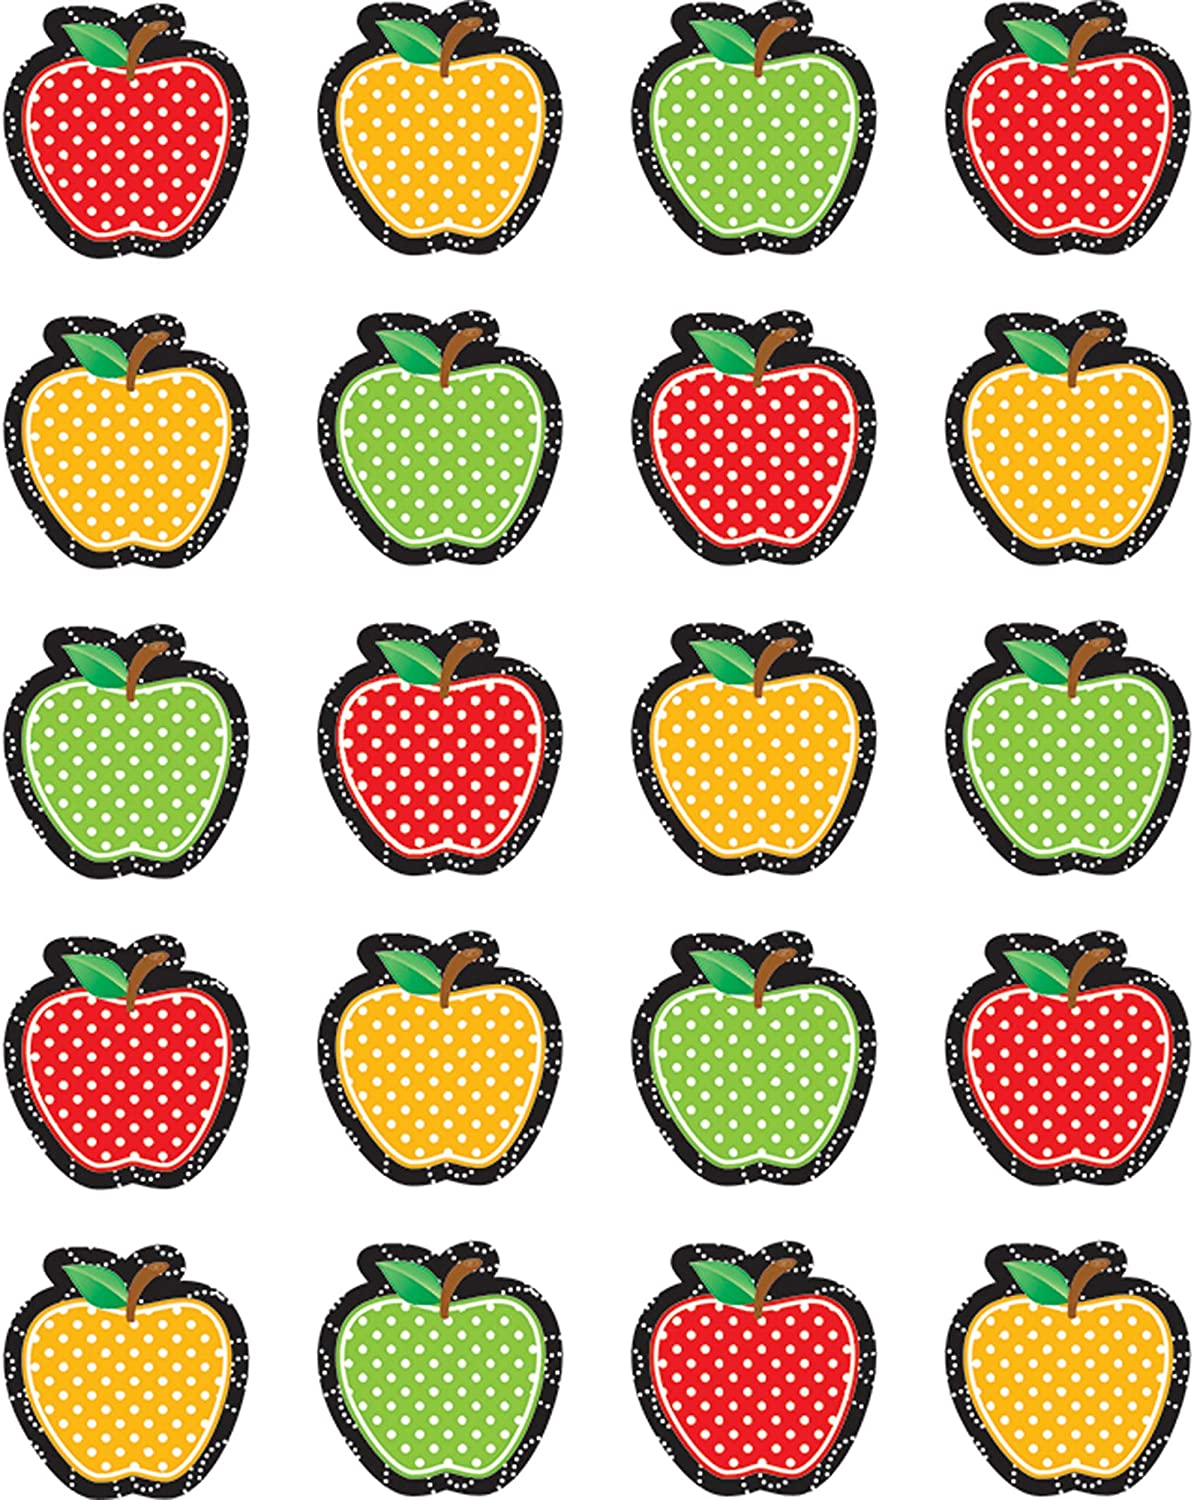 Teacher Created Resources Dotty Apples Stickers, 5912